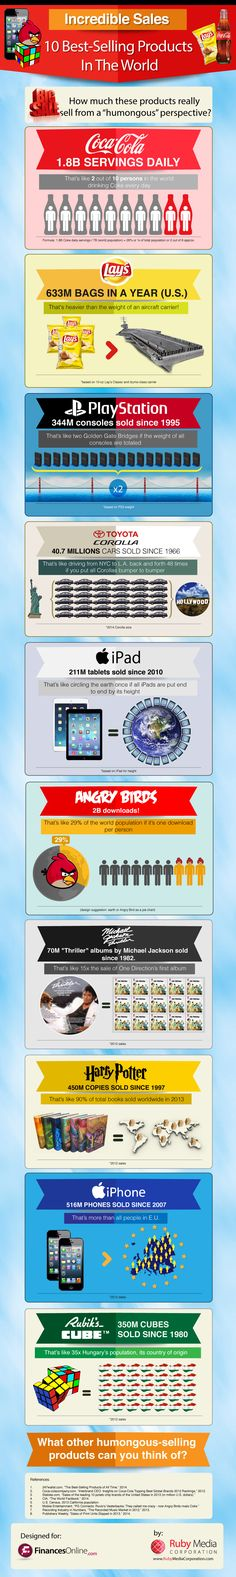 Die zehn meistverkauften Produkte der Welt – darunter #iPhone, #iPad, Playstation & Angry Birds | Kroker's Look @ IT